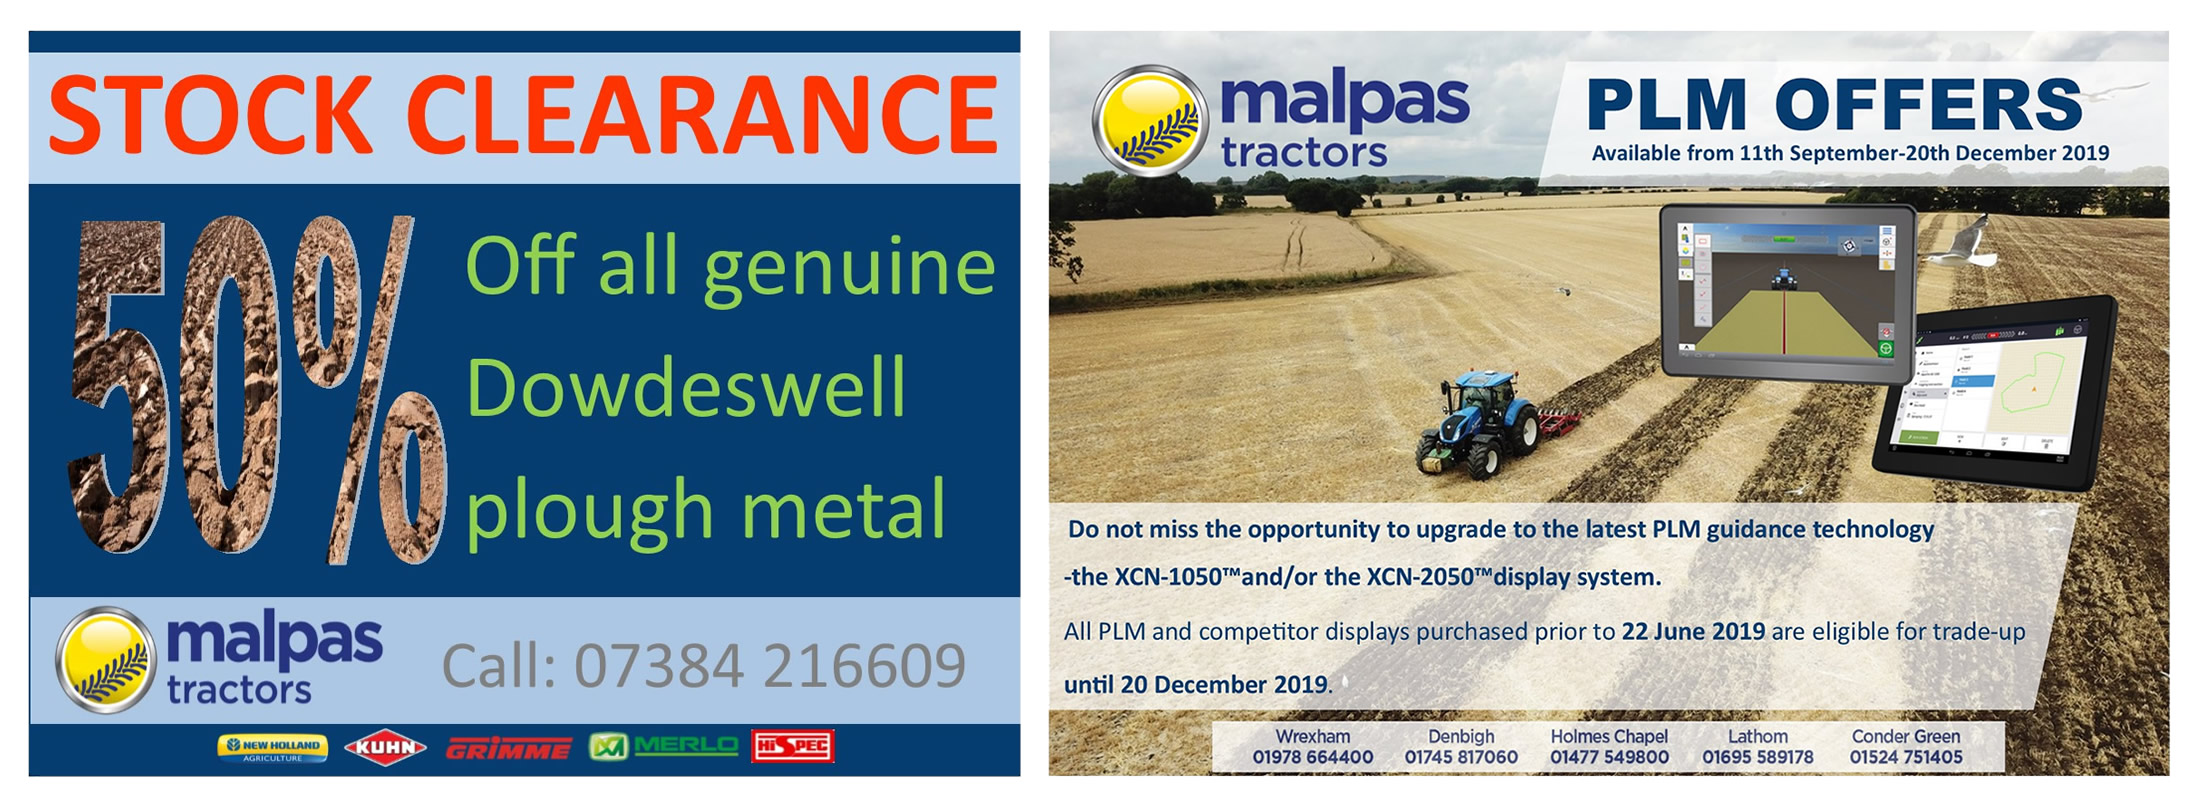 Malpas Tractors - Latest Offers